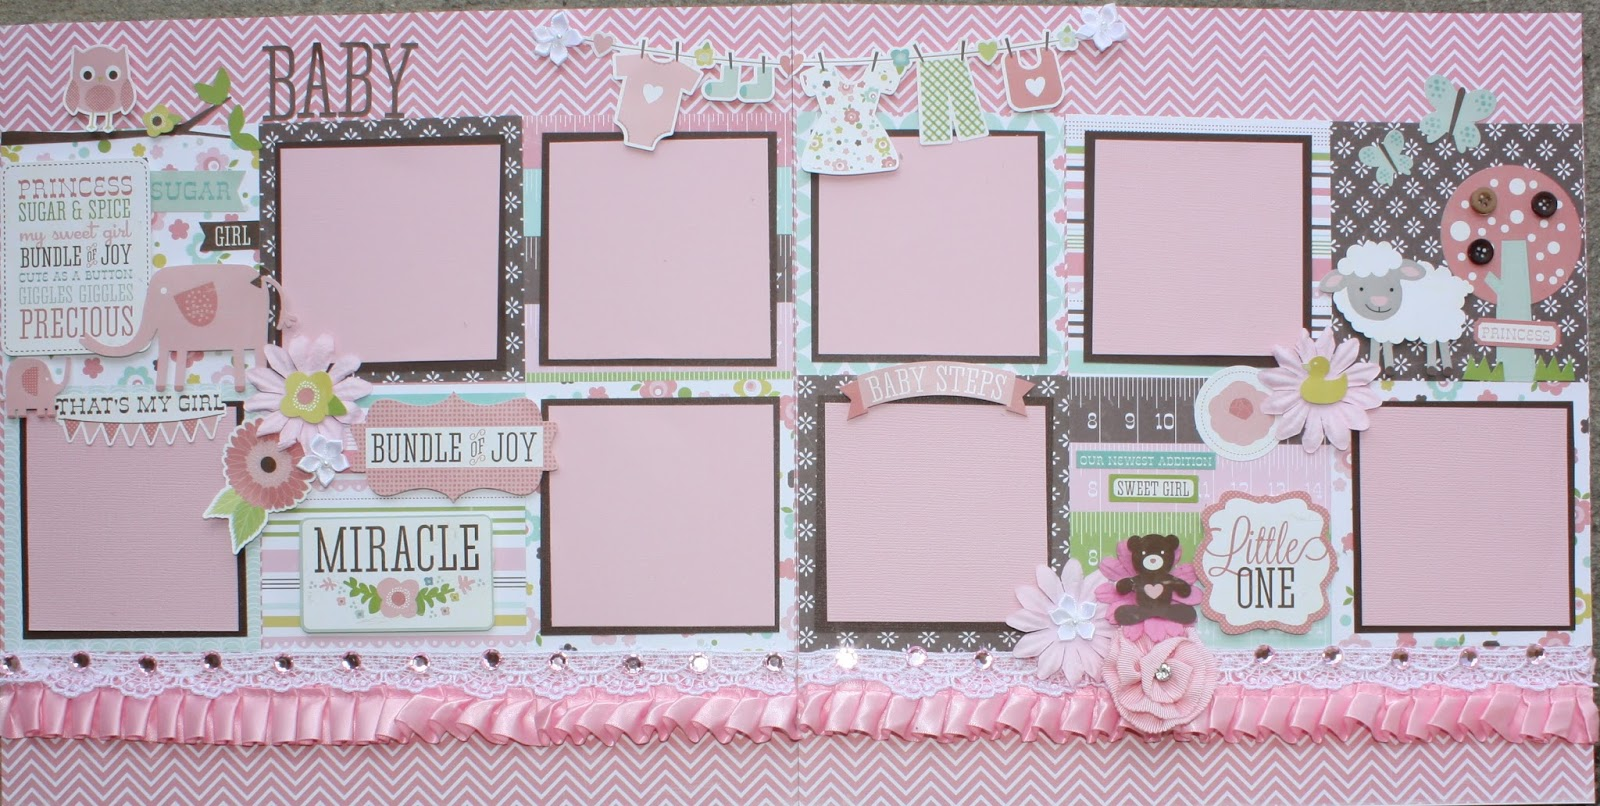 Amazing Grace Paper Crafts Baby Boy And Baby Girl Layouts